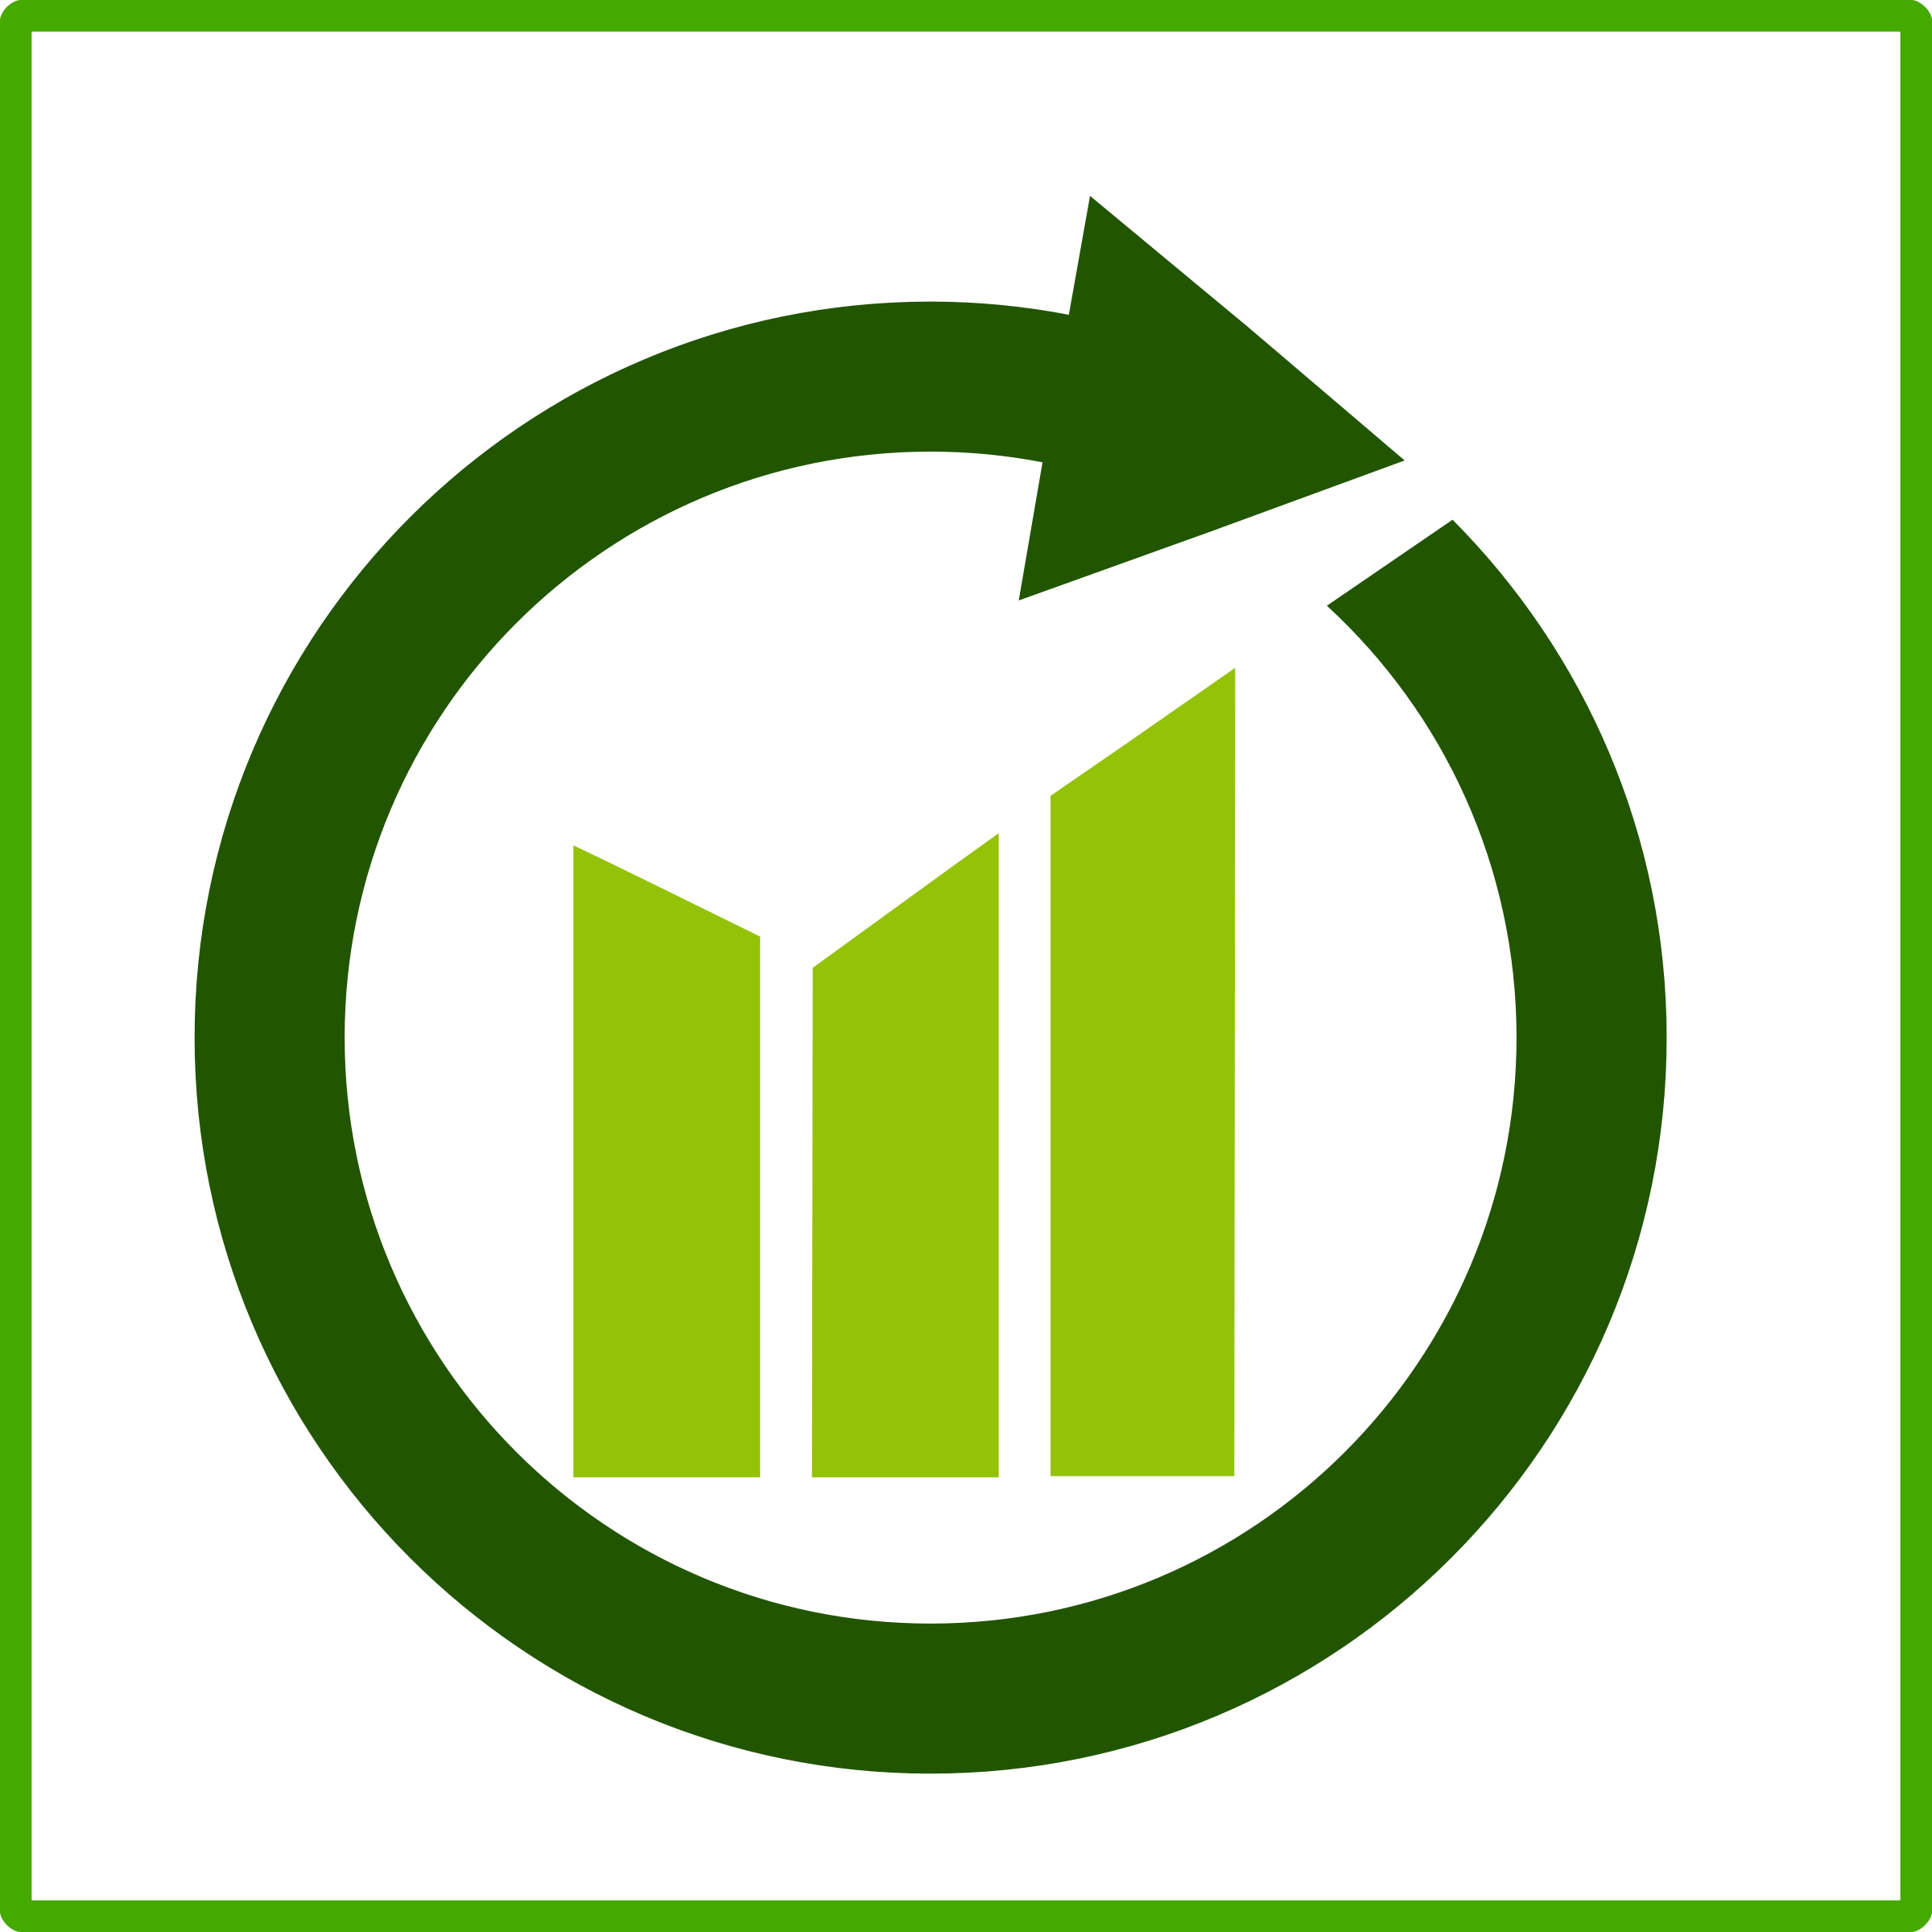 Growth clipart growth chart. Eco green icon big